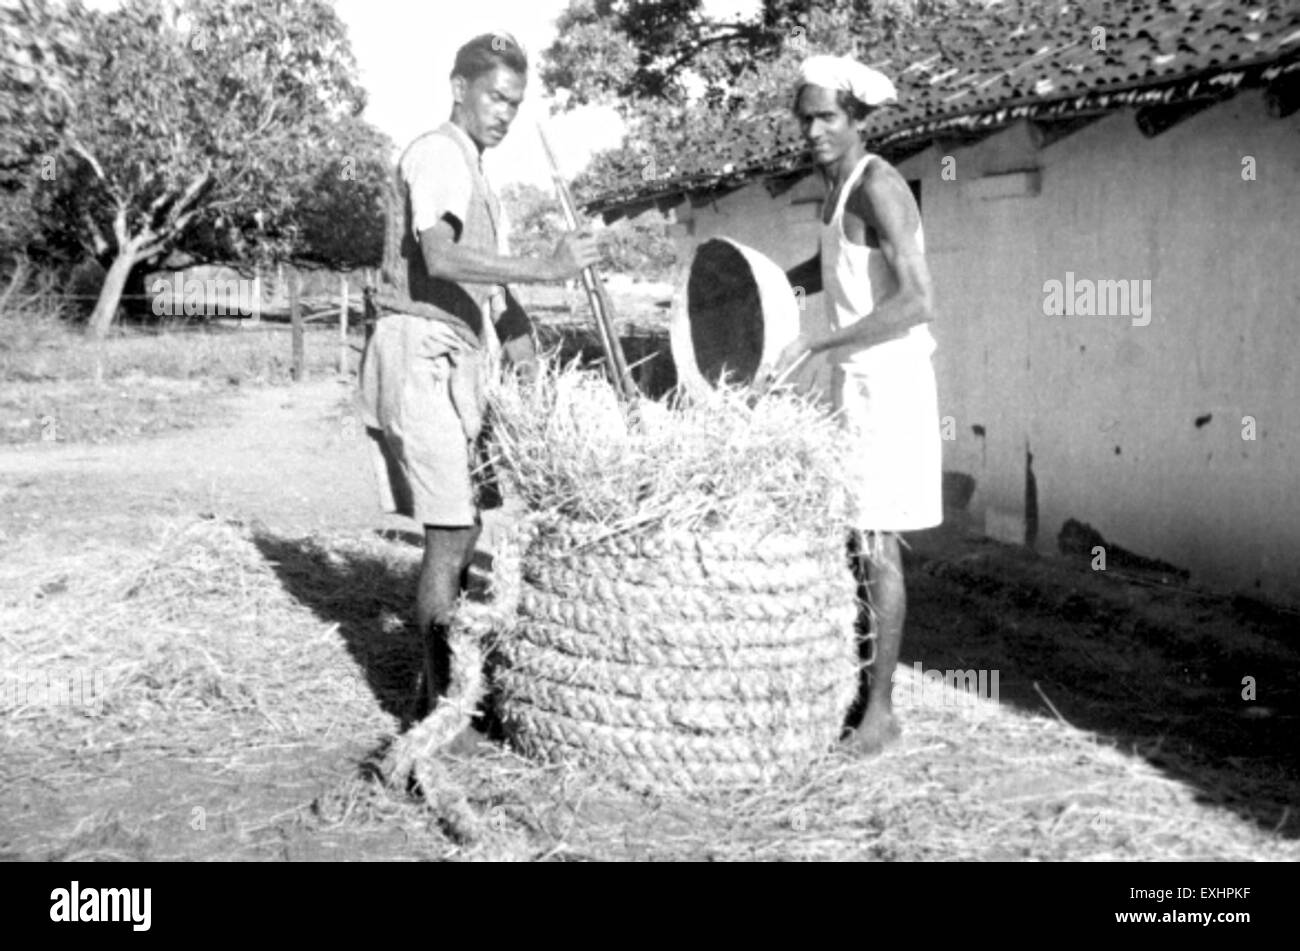 Storing rice, India, 1956 1 - Stock Image